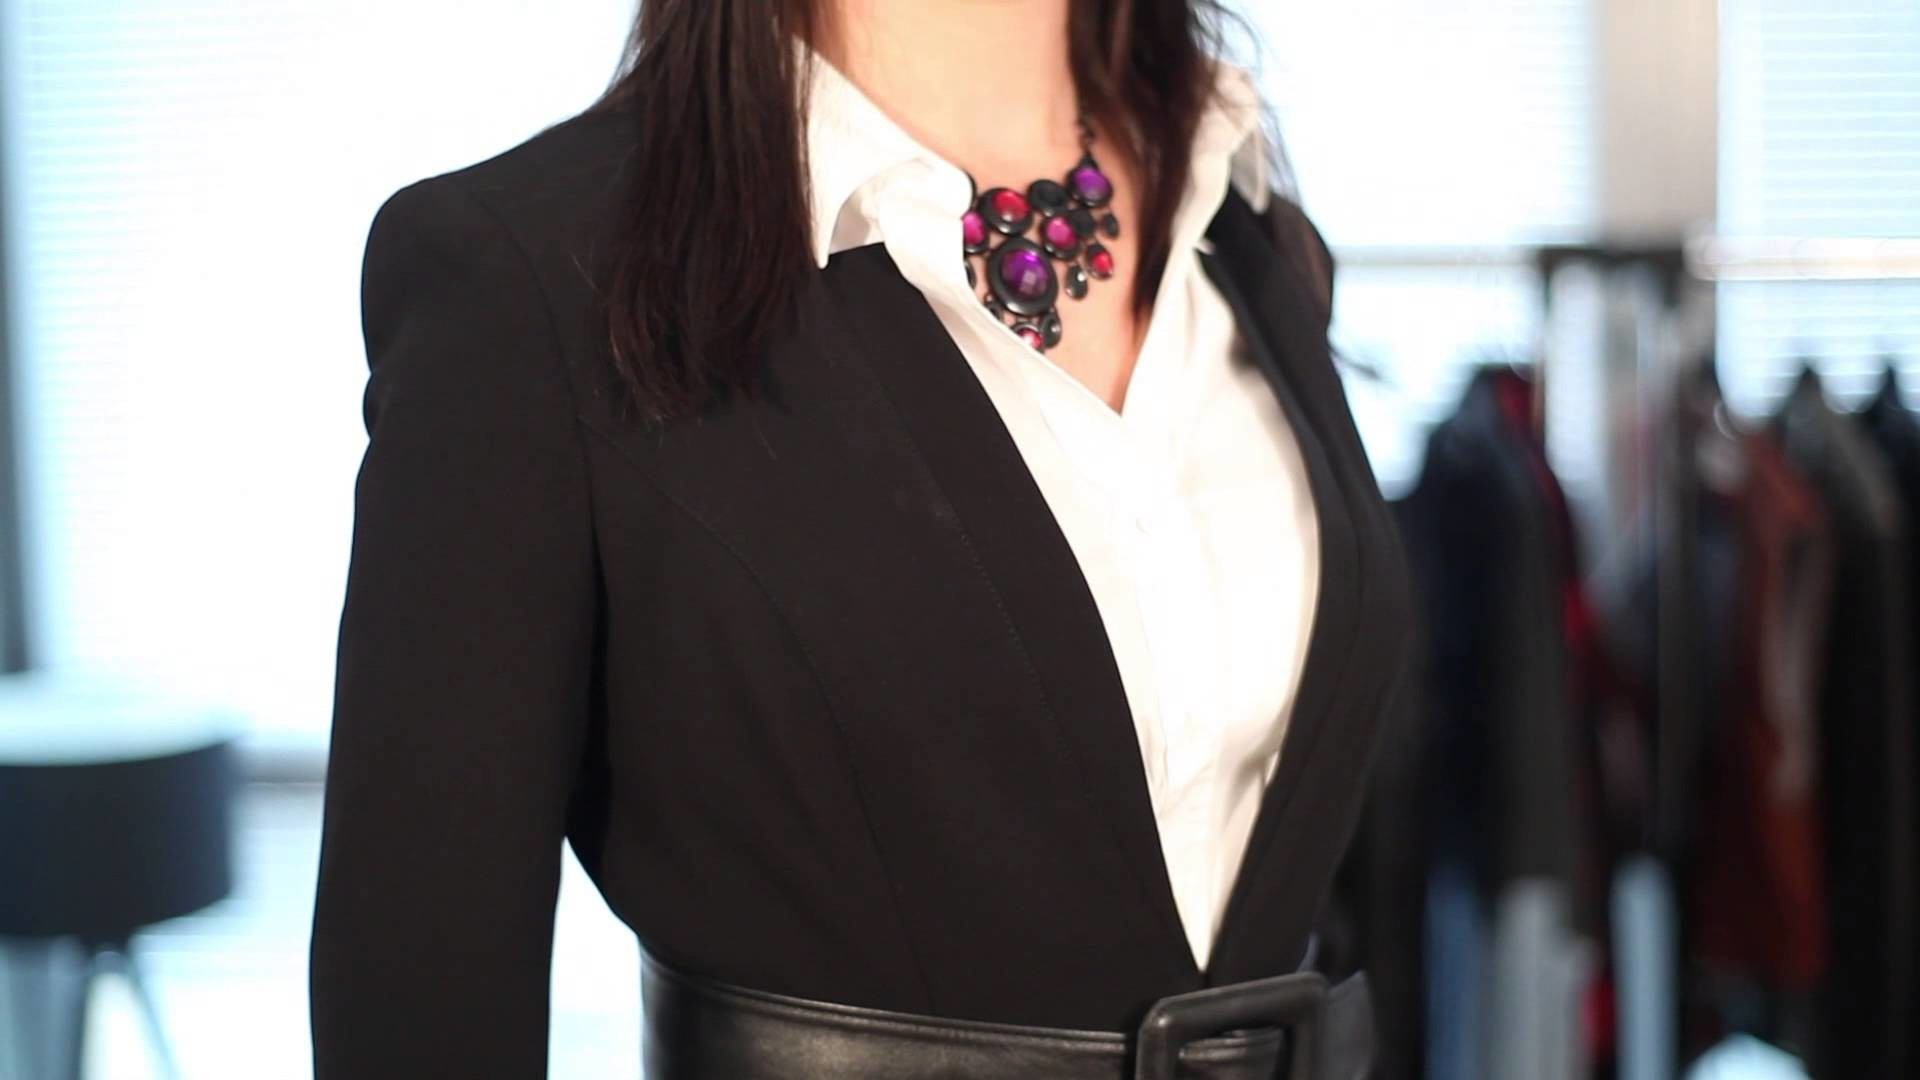 Res: 1920x1080, How Women Should Not Wear a Business Suit : Business Fashion & More -  YouTube